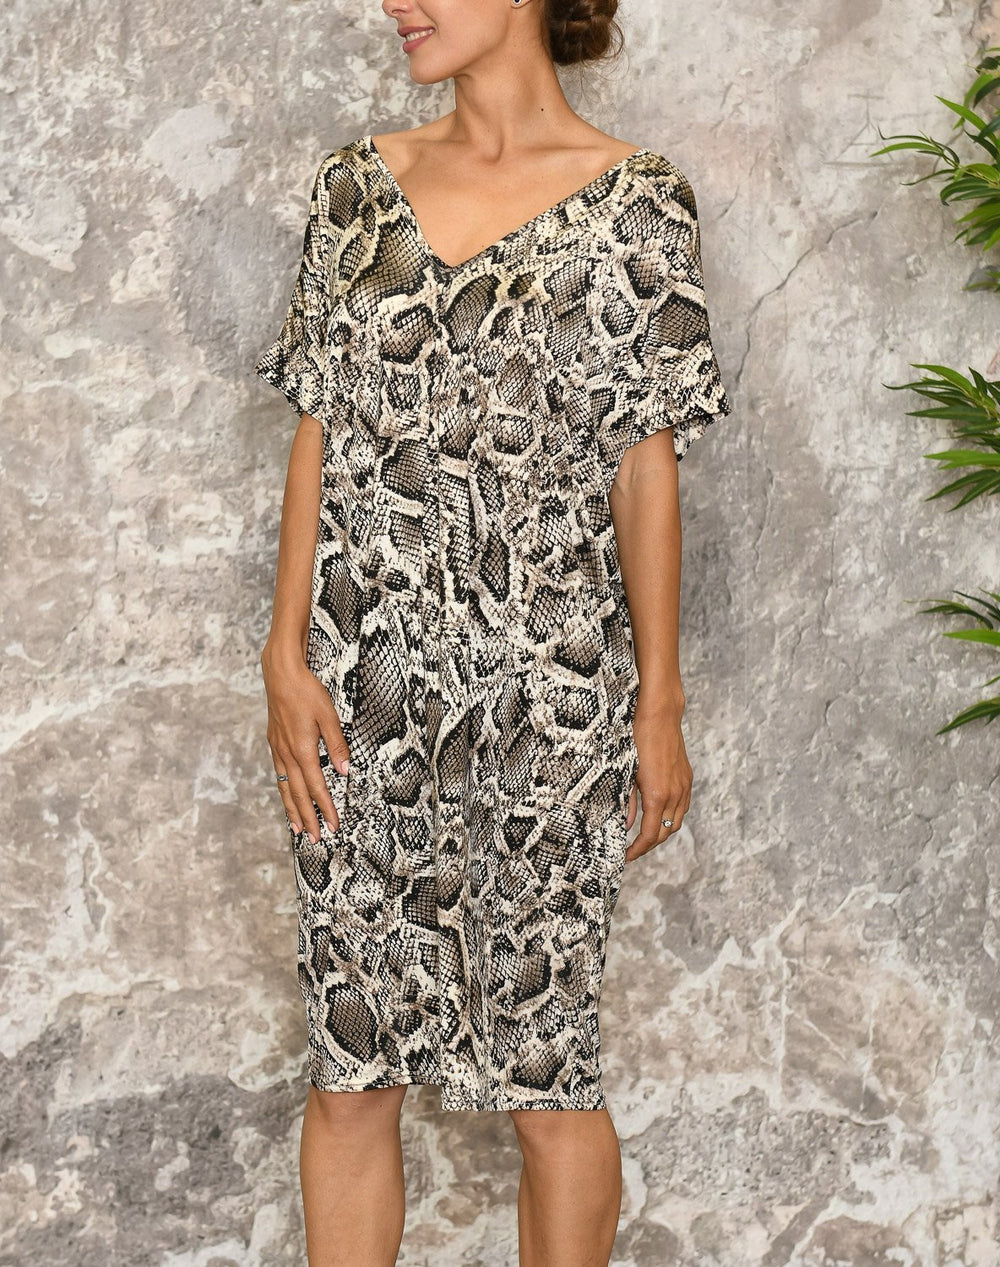 Nancy dress beige snake - Online-Mode